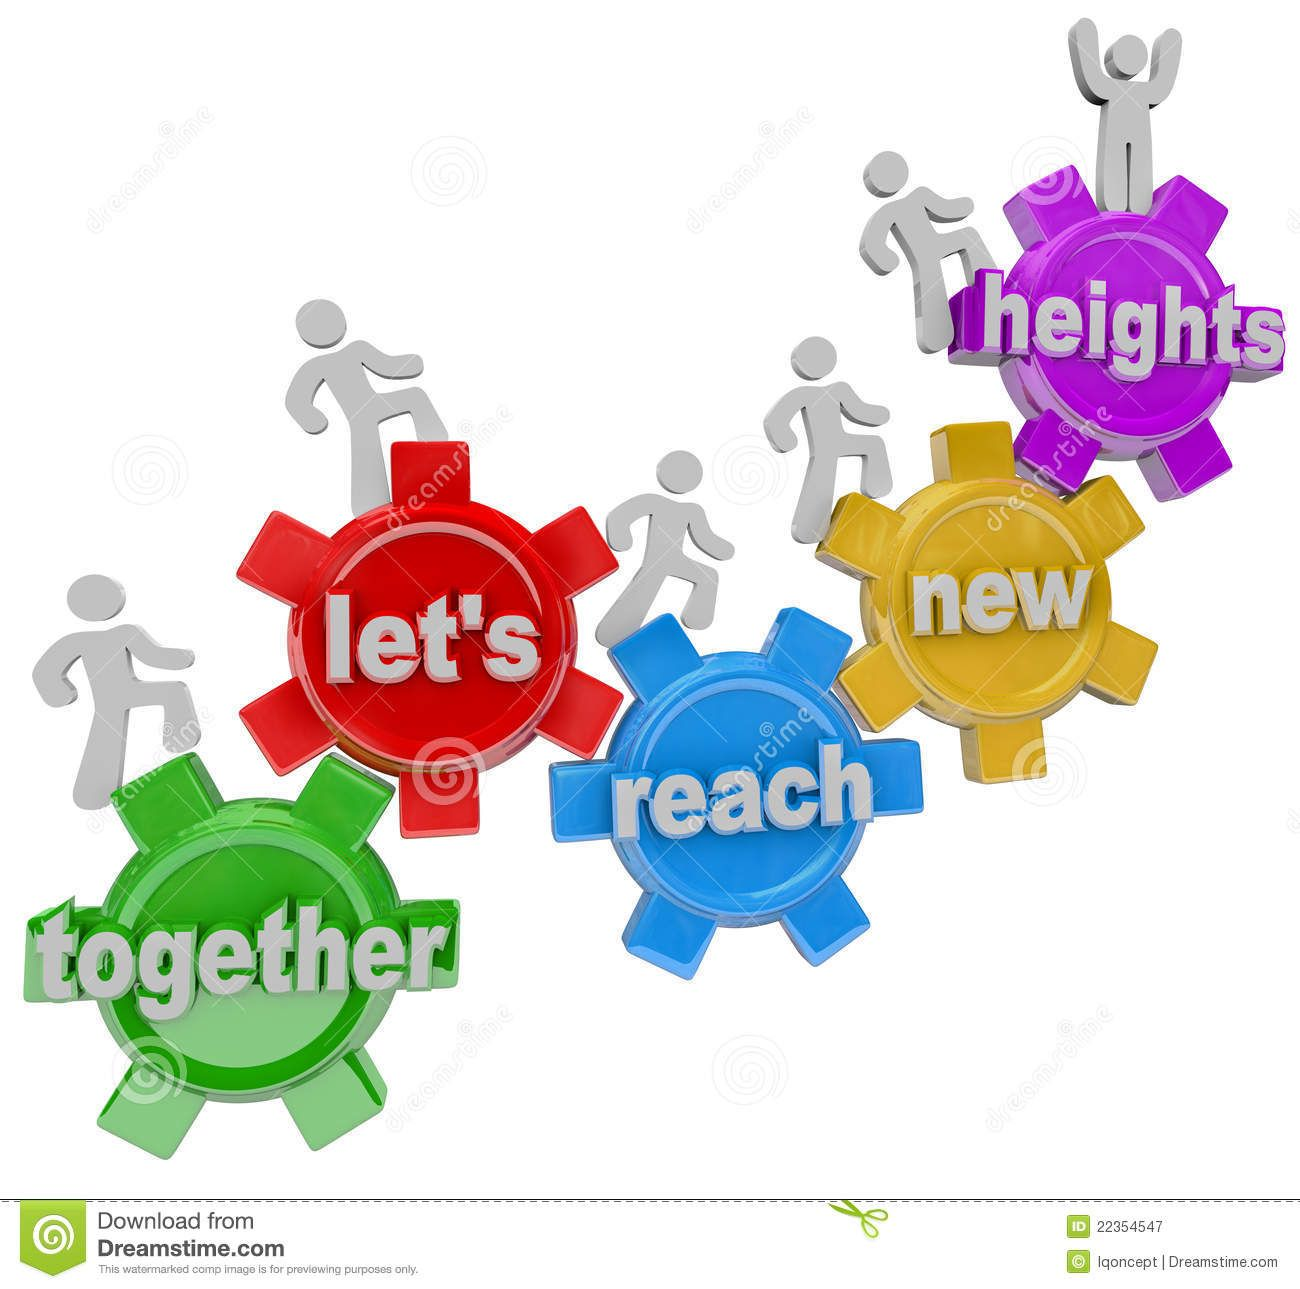 Let s get together clipart svg royalty free stock Together Let\'s Reach New Heights Team On Gears - Download From Over ... svg royalty free stock